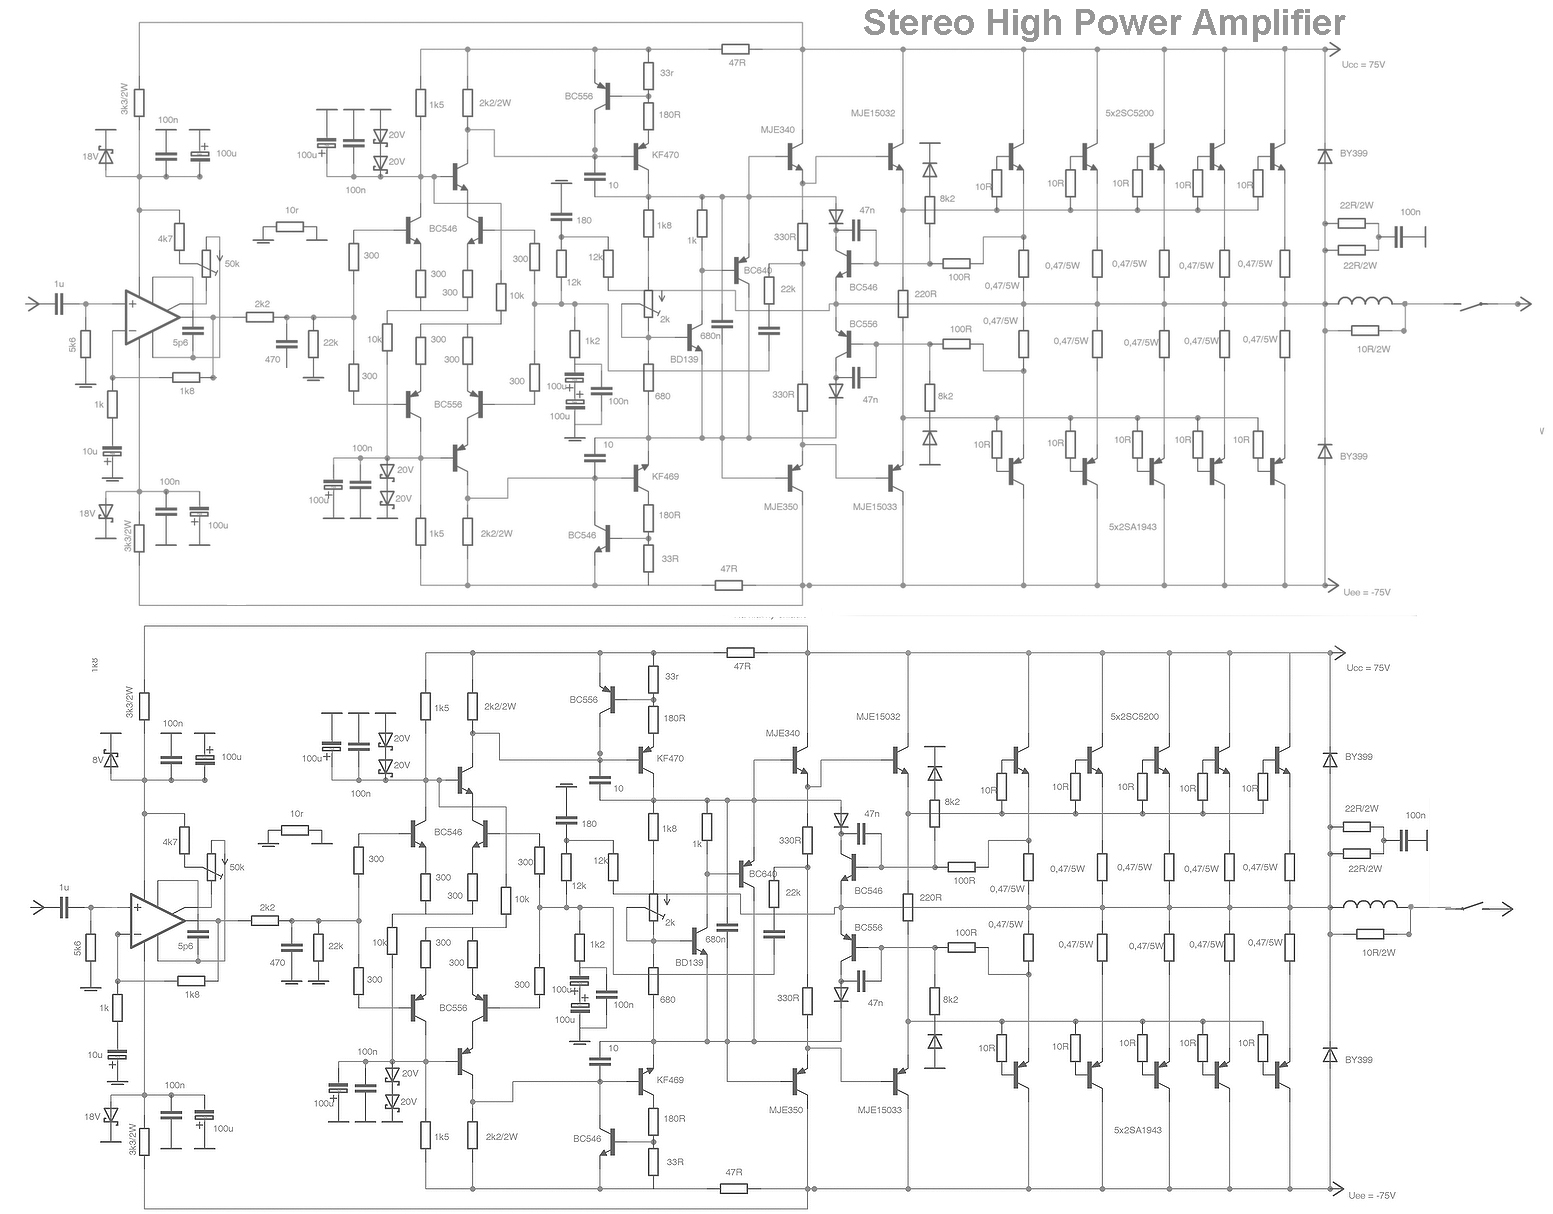 Circuit Diagram 3000w Audio Amplifier Free Wiring For You 10w Solar Panel Gt Circuits Stereo High Power Html L21320 5000w 100w